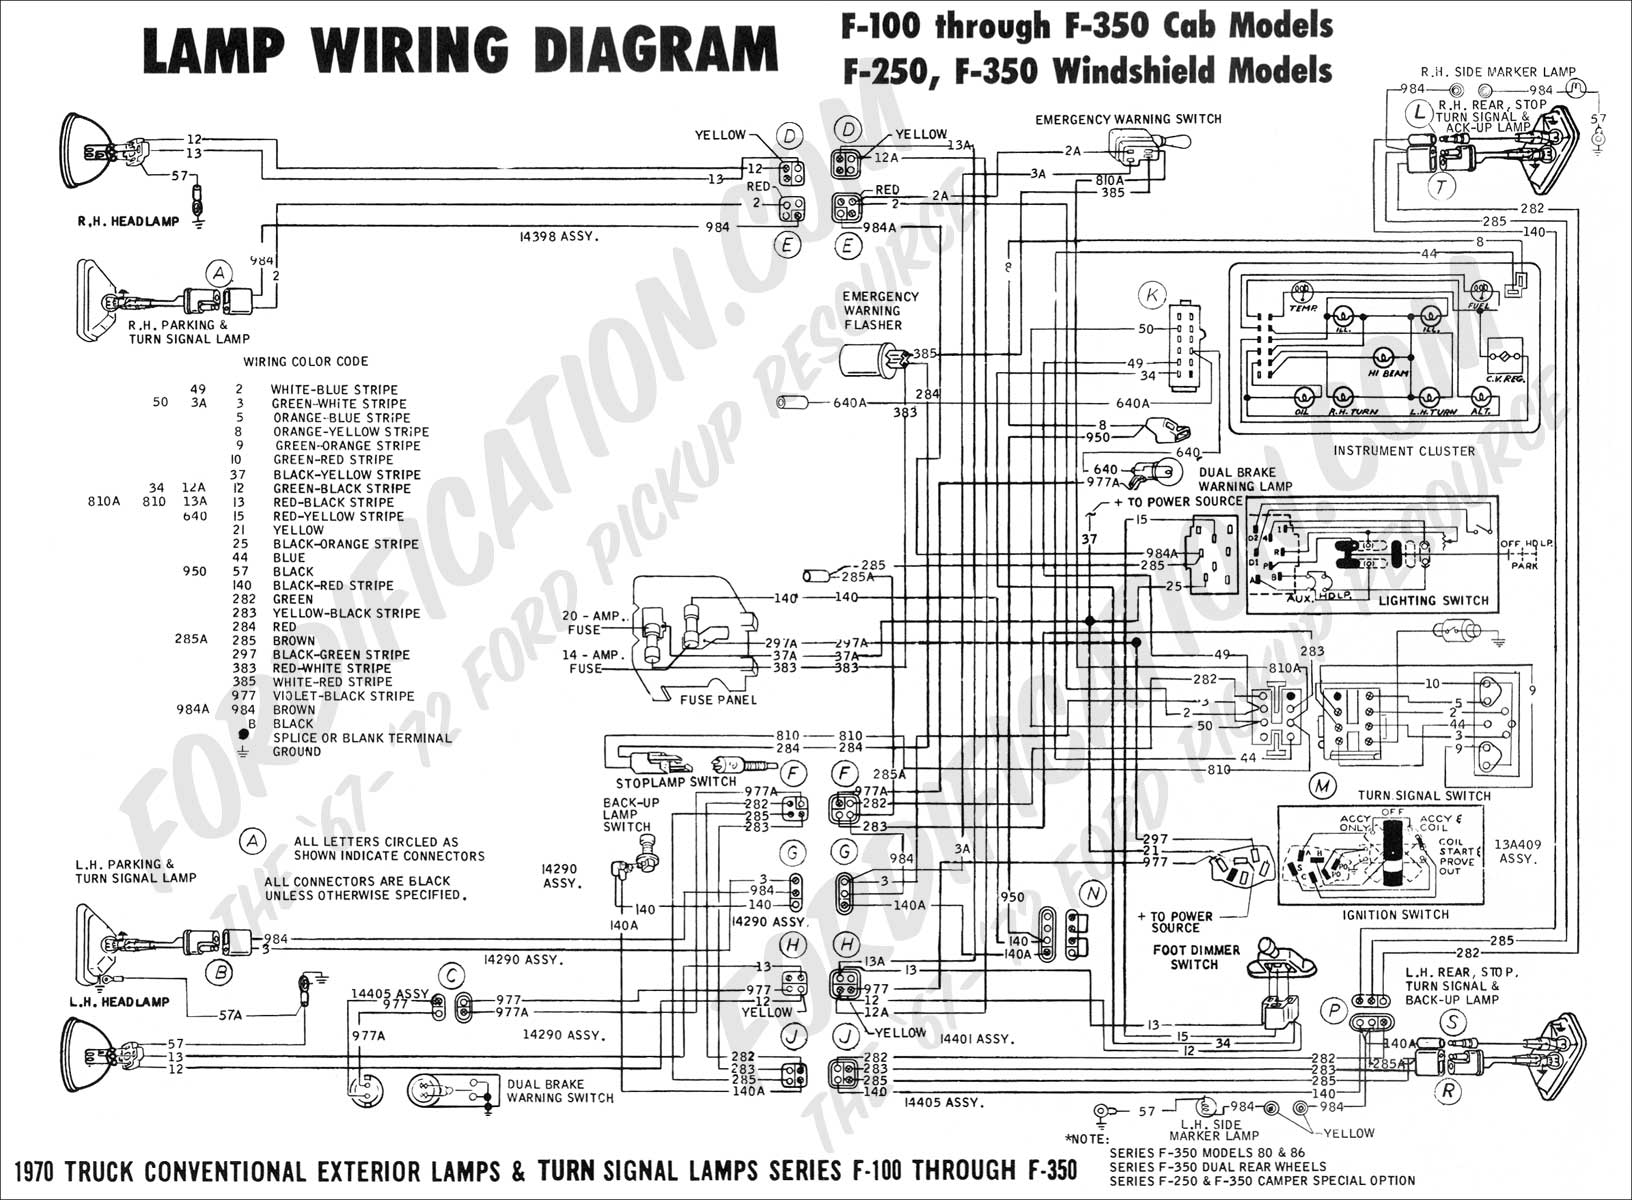 hight resolution of wiring diagram 1995 ford econoline simple wiring diagram 1999 f250 wiper diagram 2000 ford e 450 super duty wiring diagrams